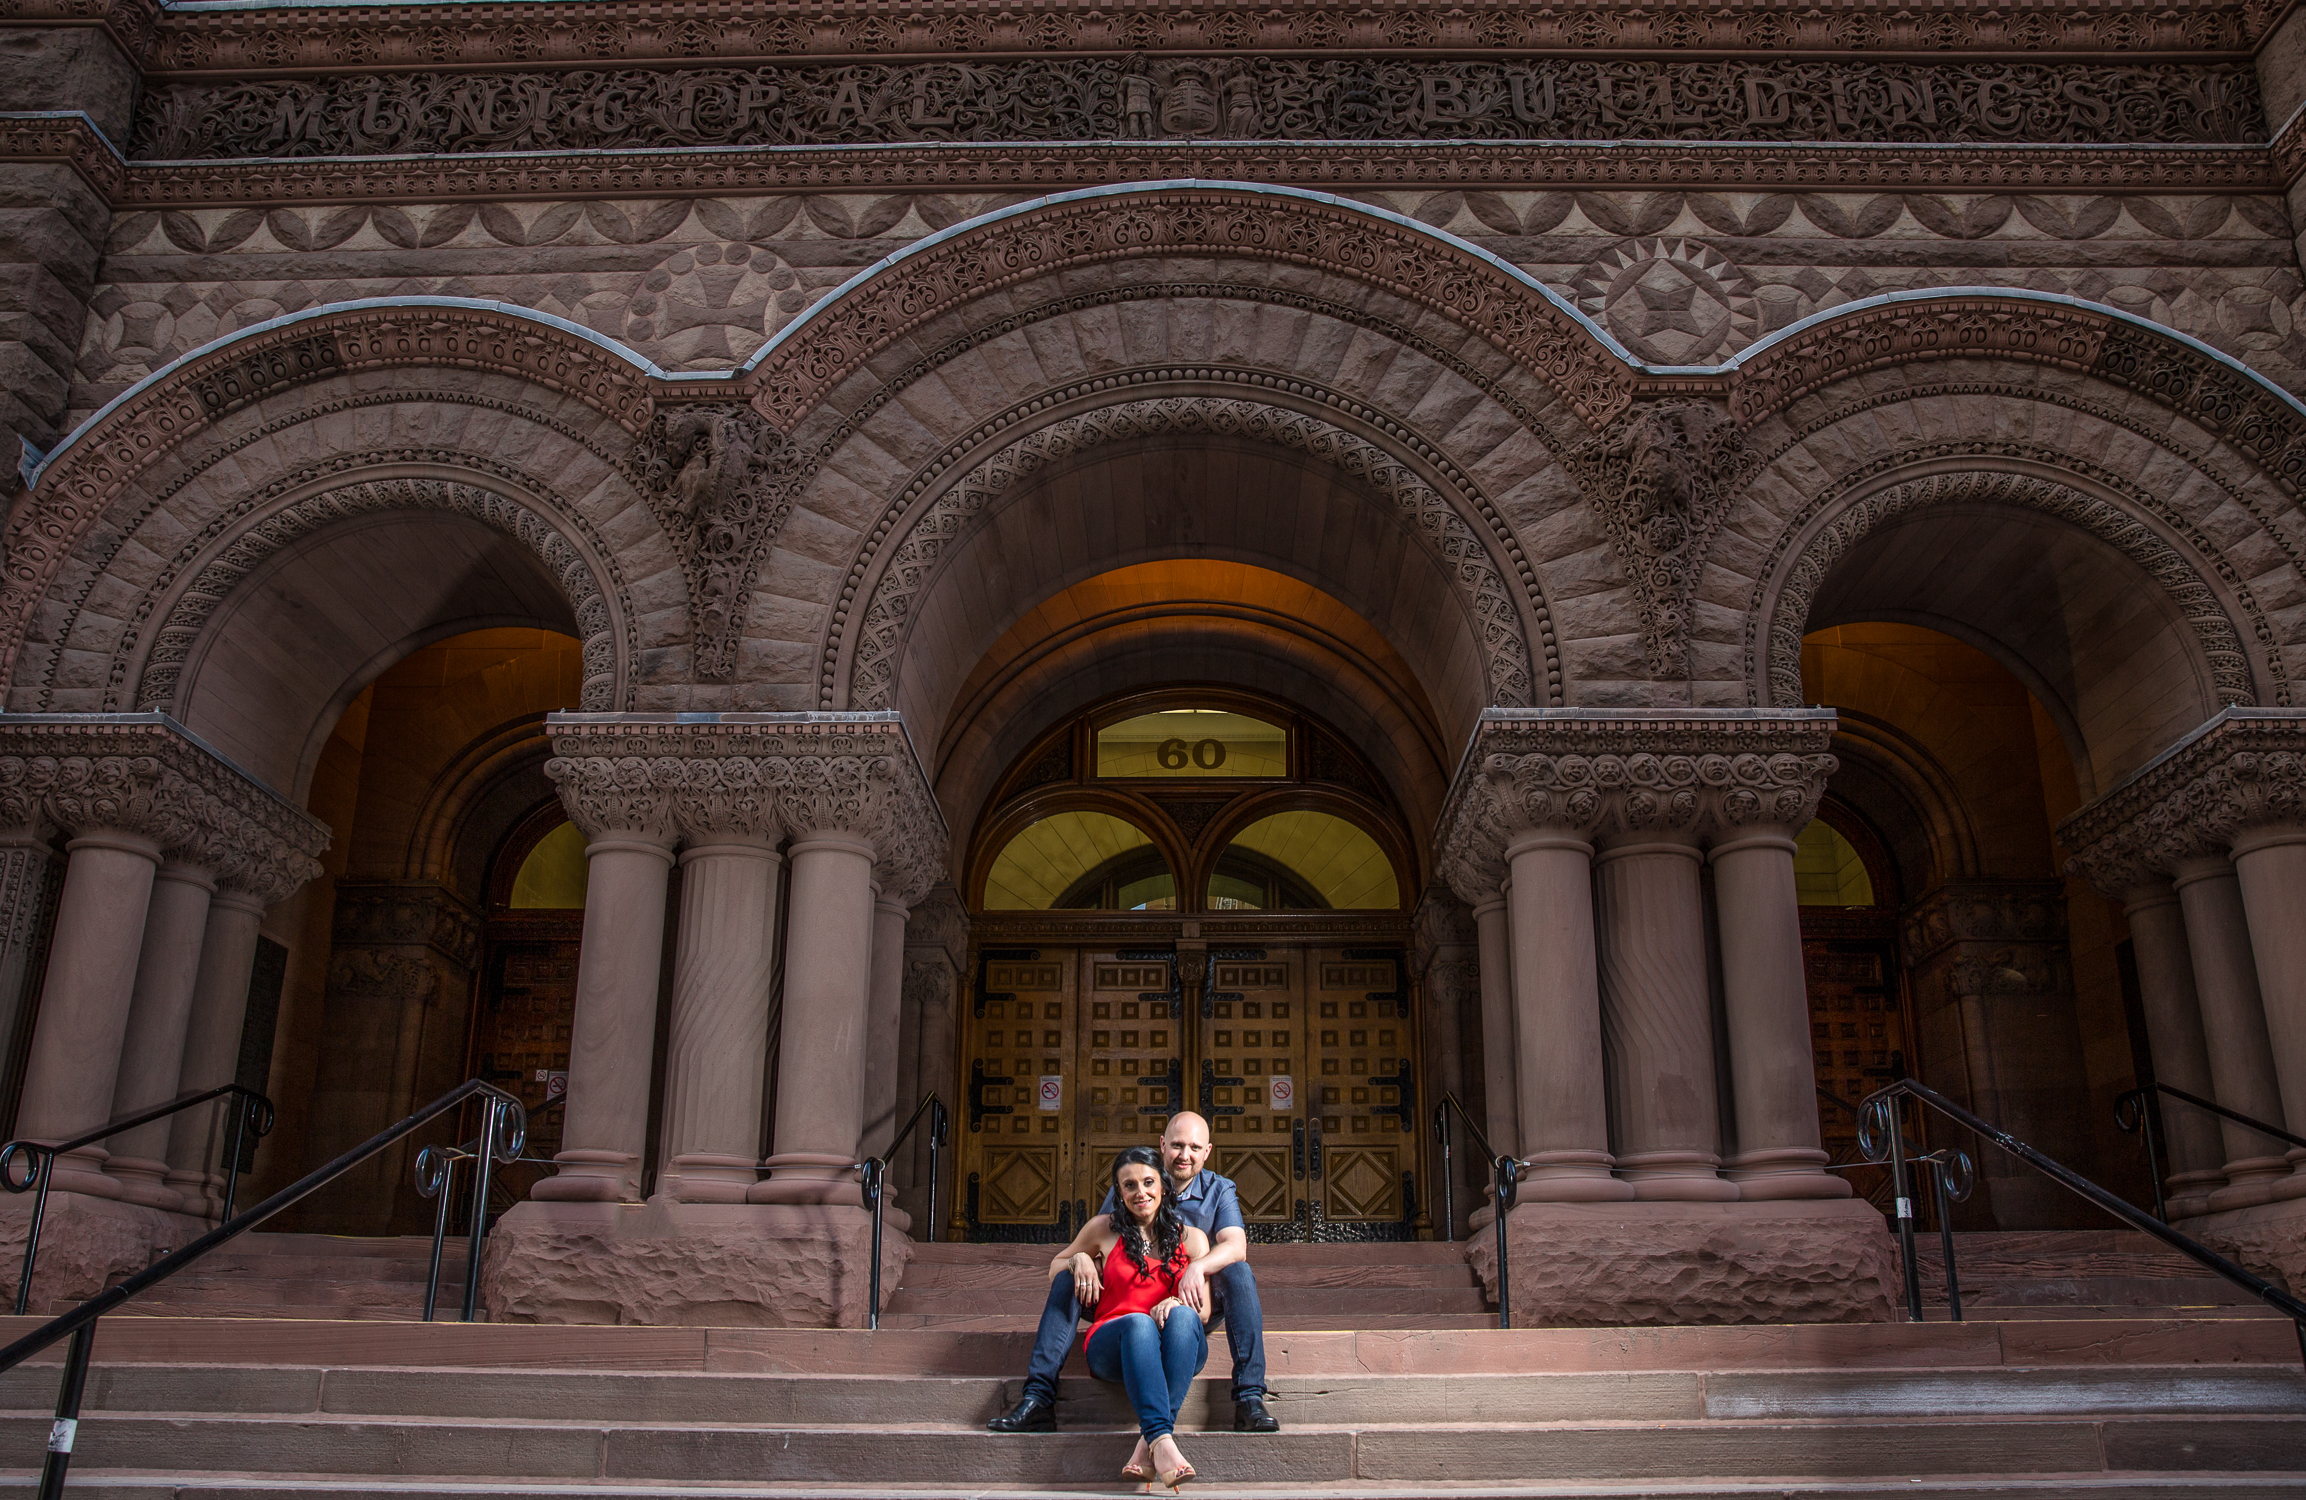 Downtown Toronto & City Hall Engagement Shoot | Derrel Ho-Shing